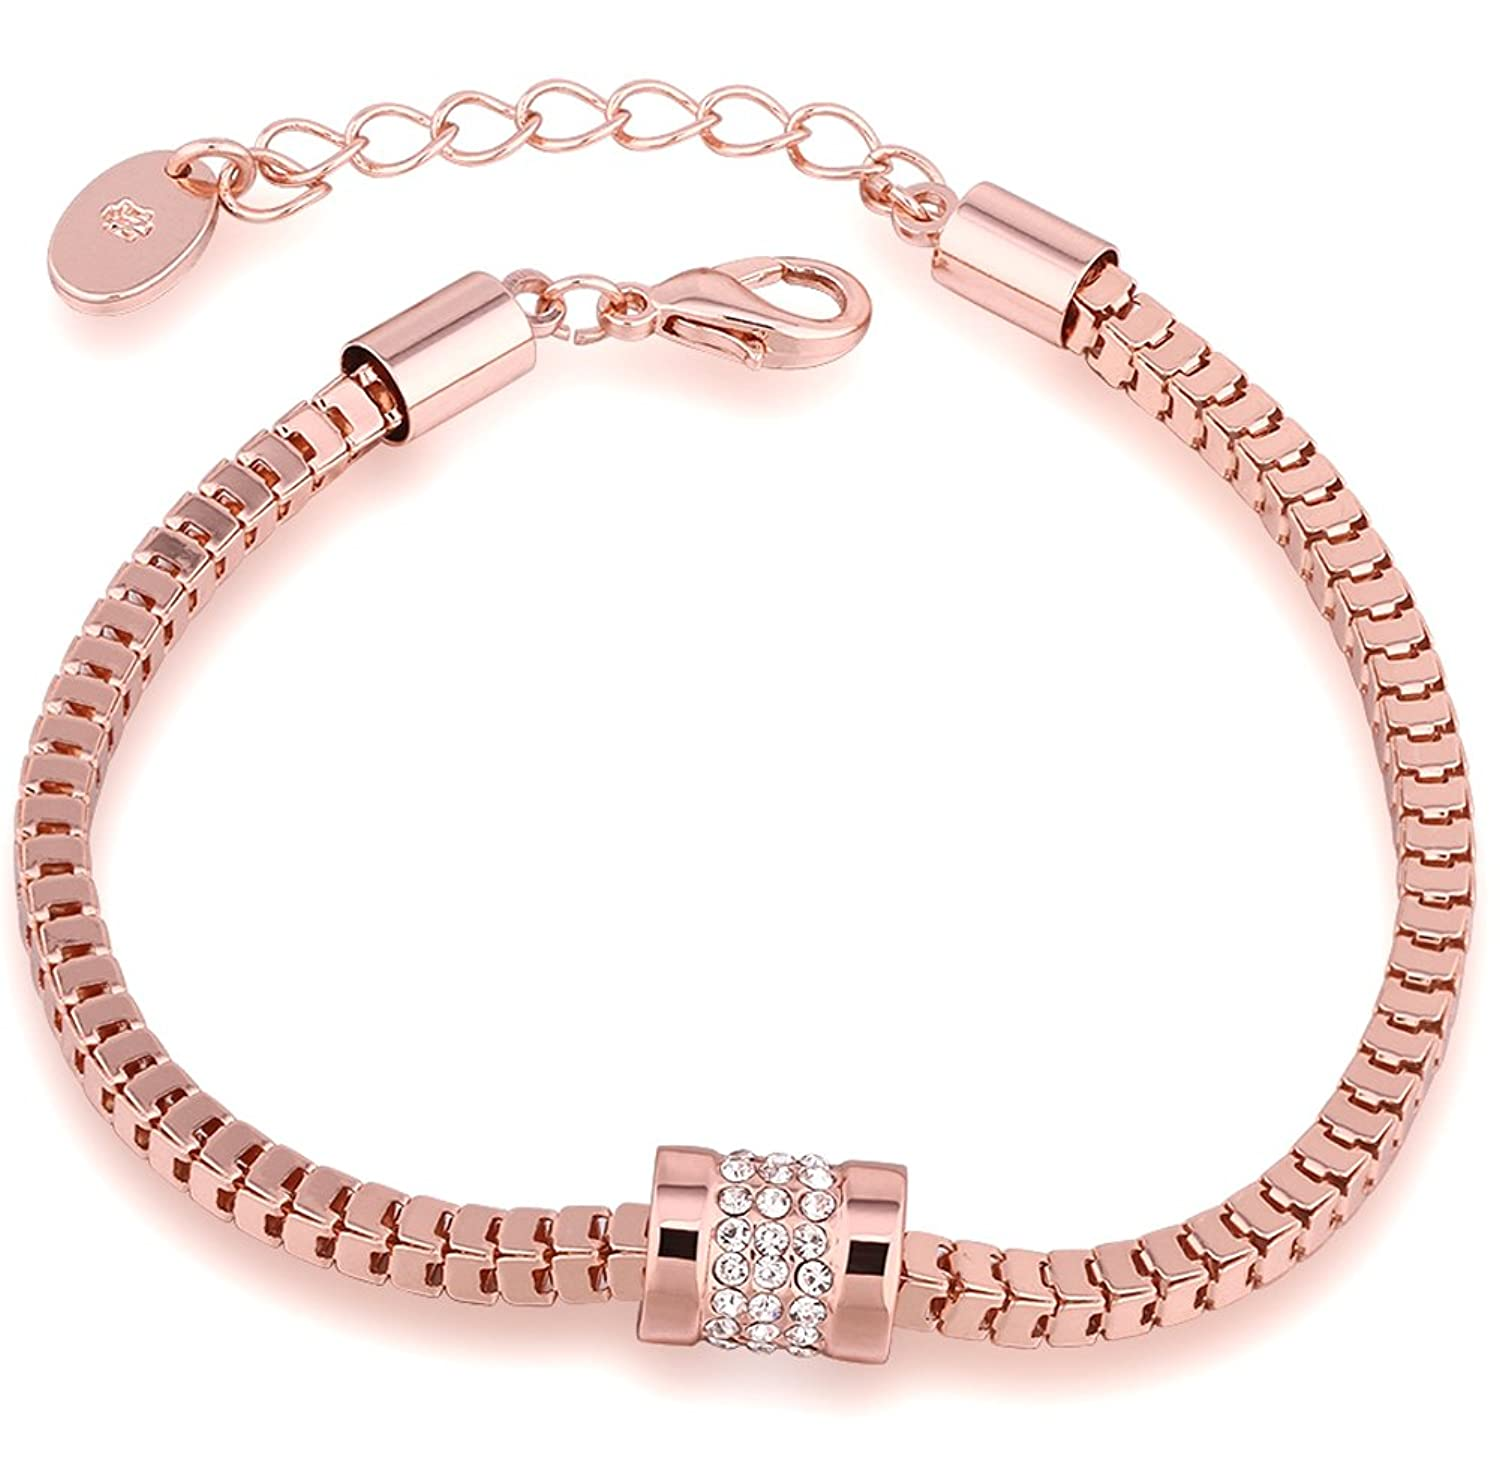 Annymall Rose Gold Plated Fashion Jewelry Crystals Unique link Bracelet for Women Girls